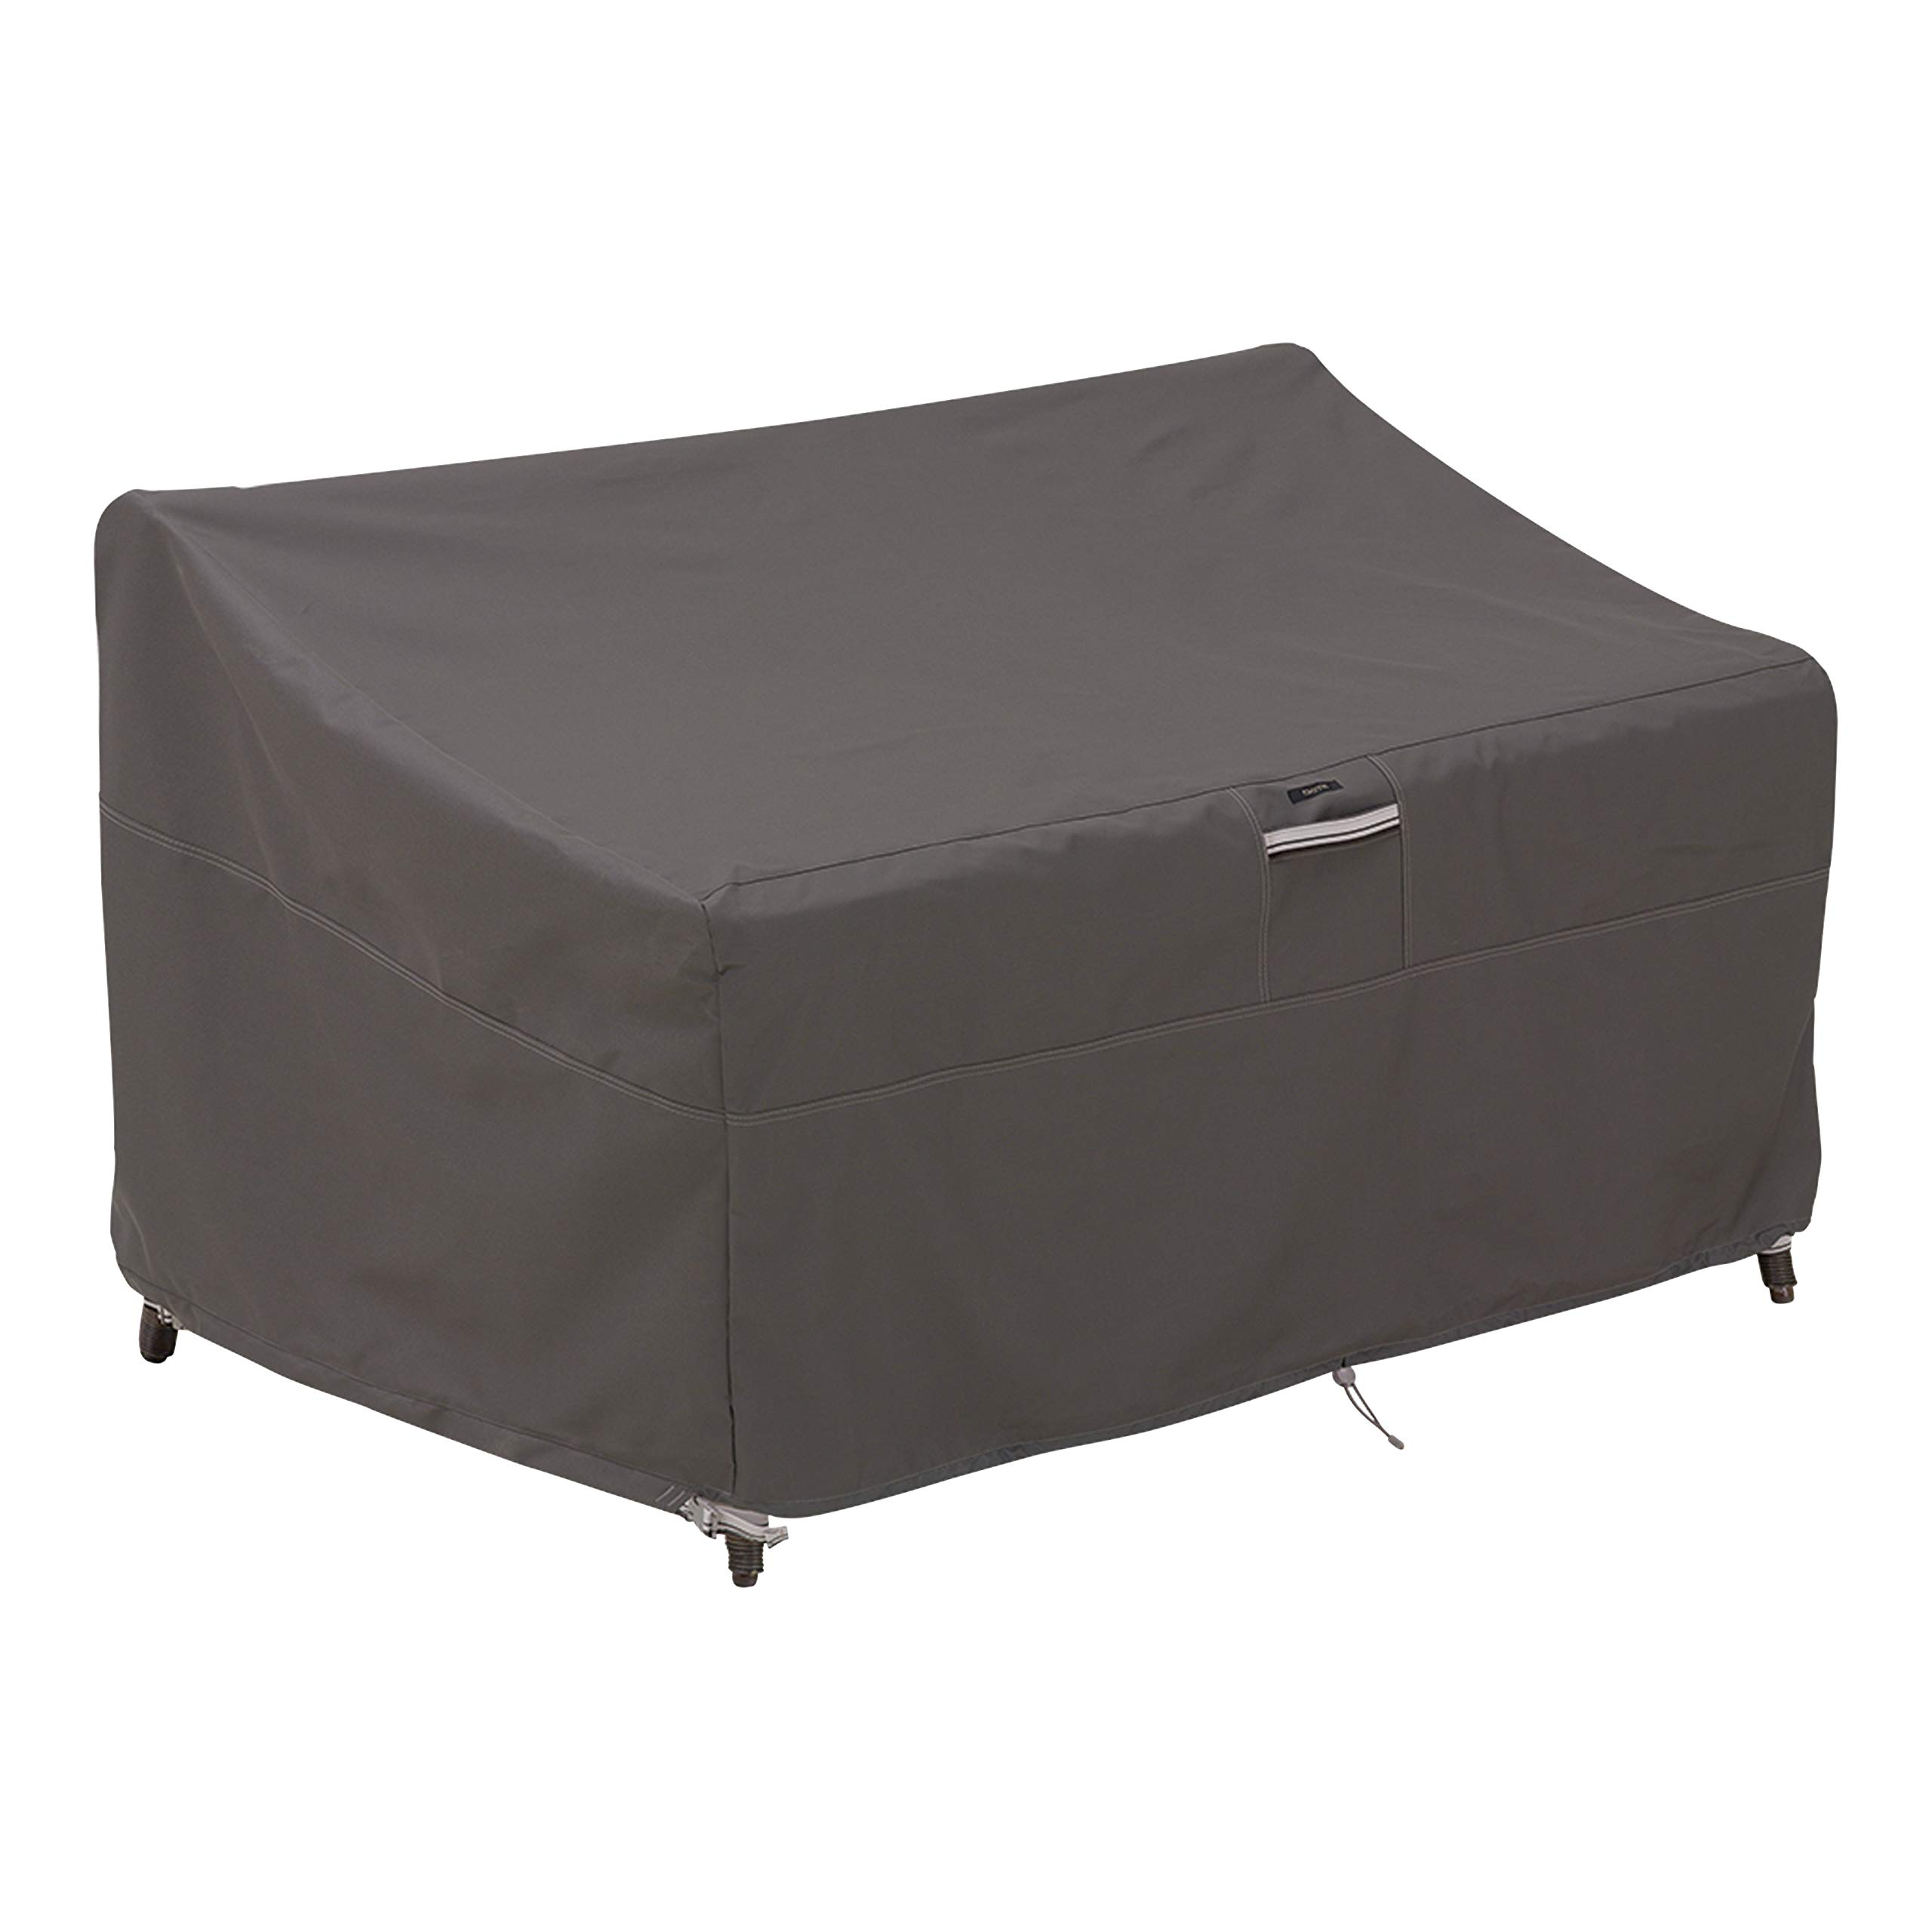 Classic Accessories Ravenna Patio Deep Seat Sofa Cover, Large by Classic Accessories